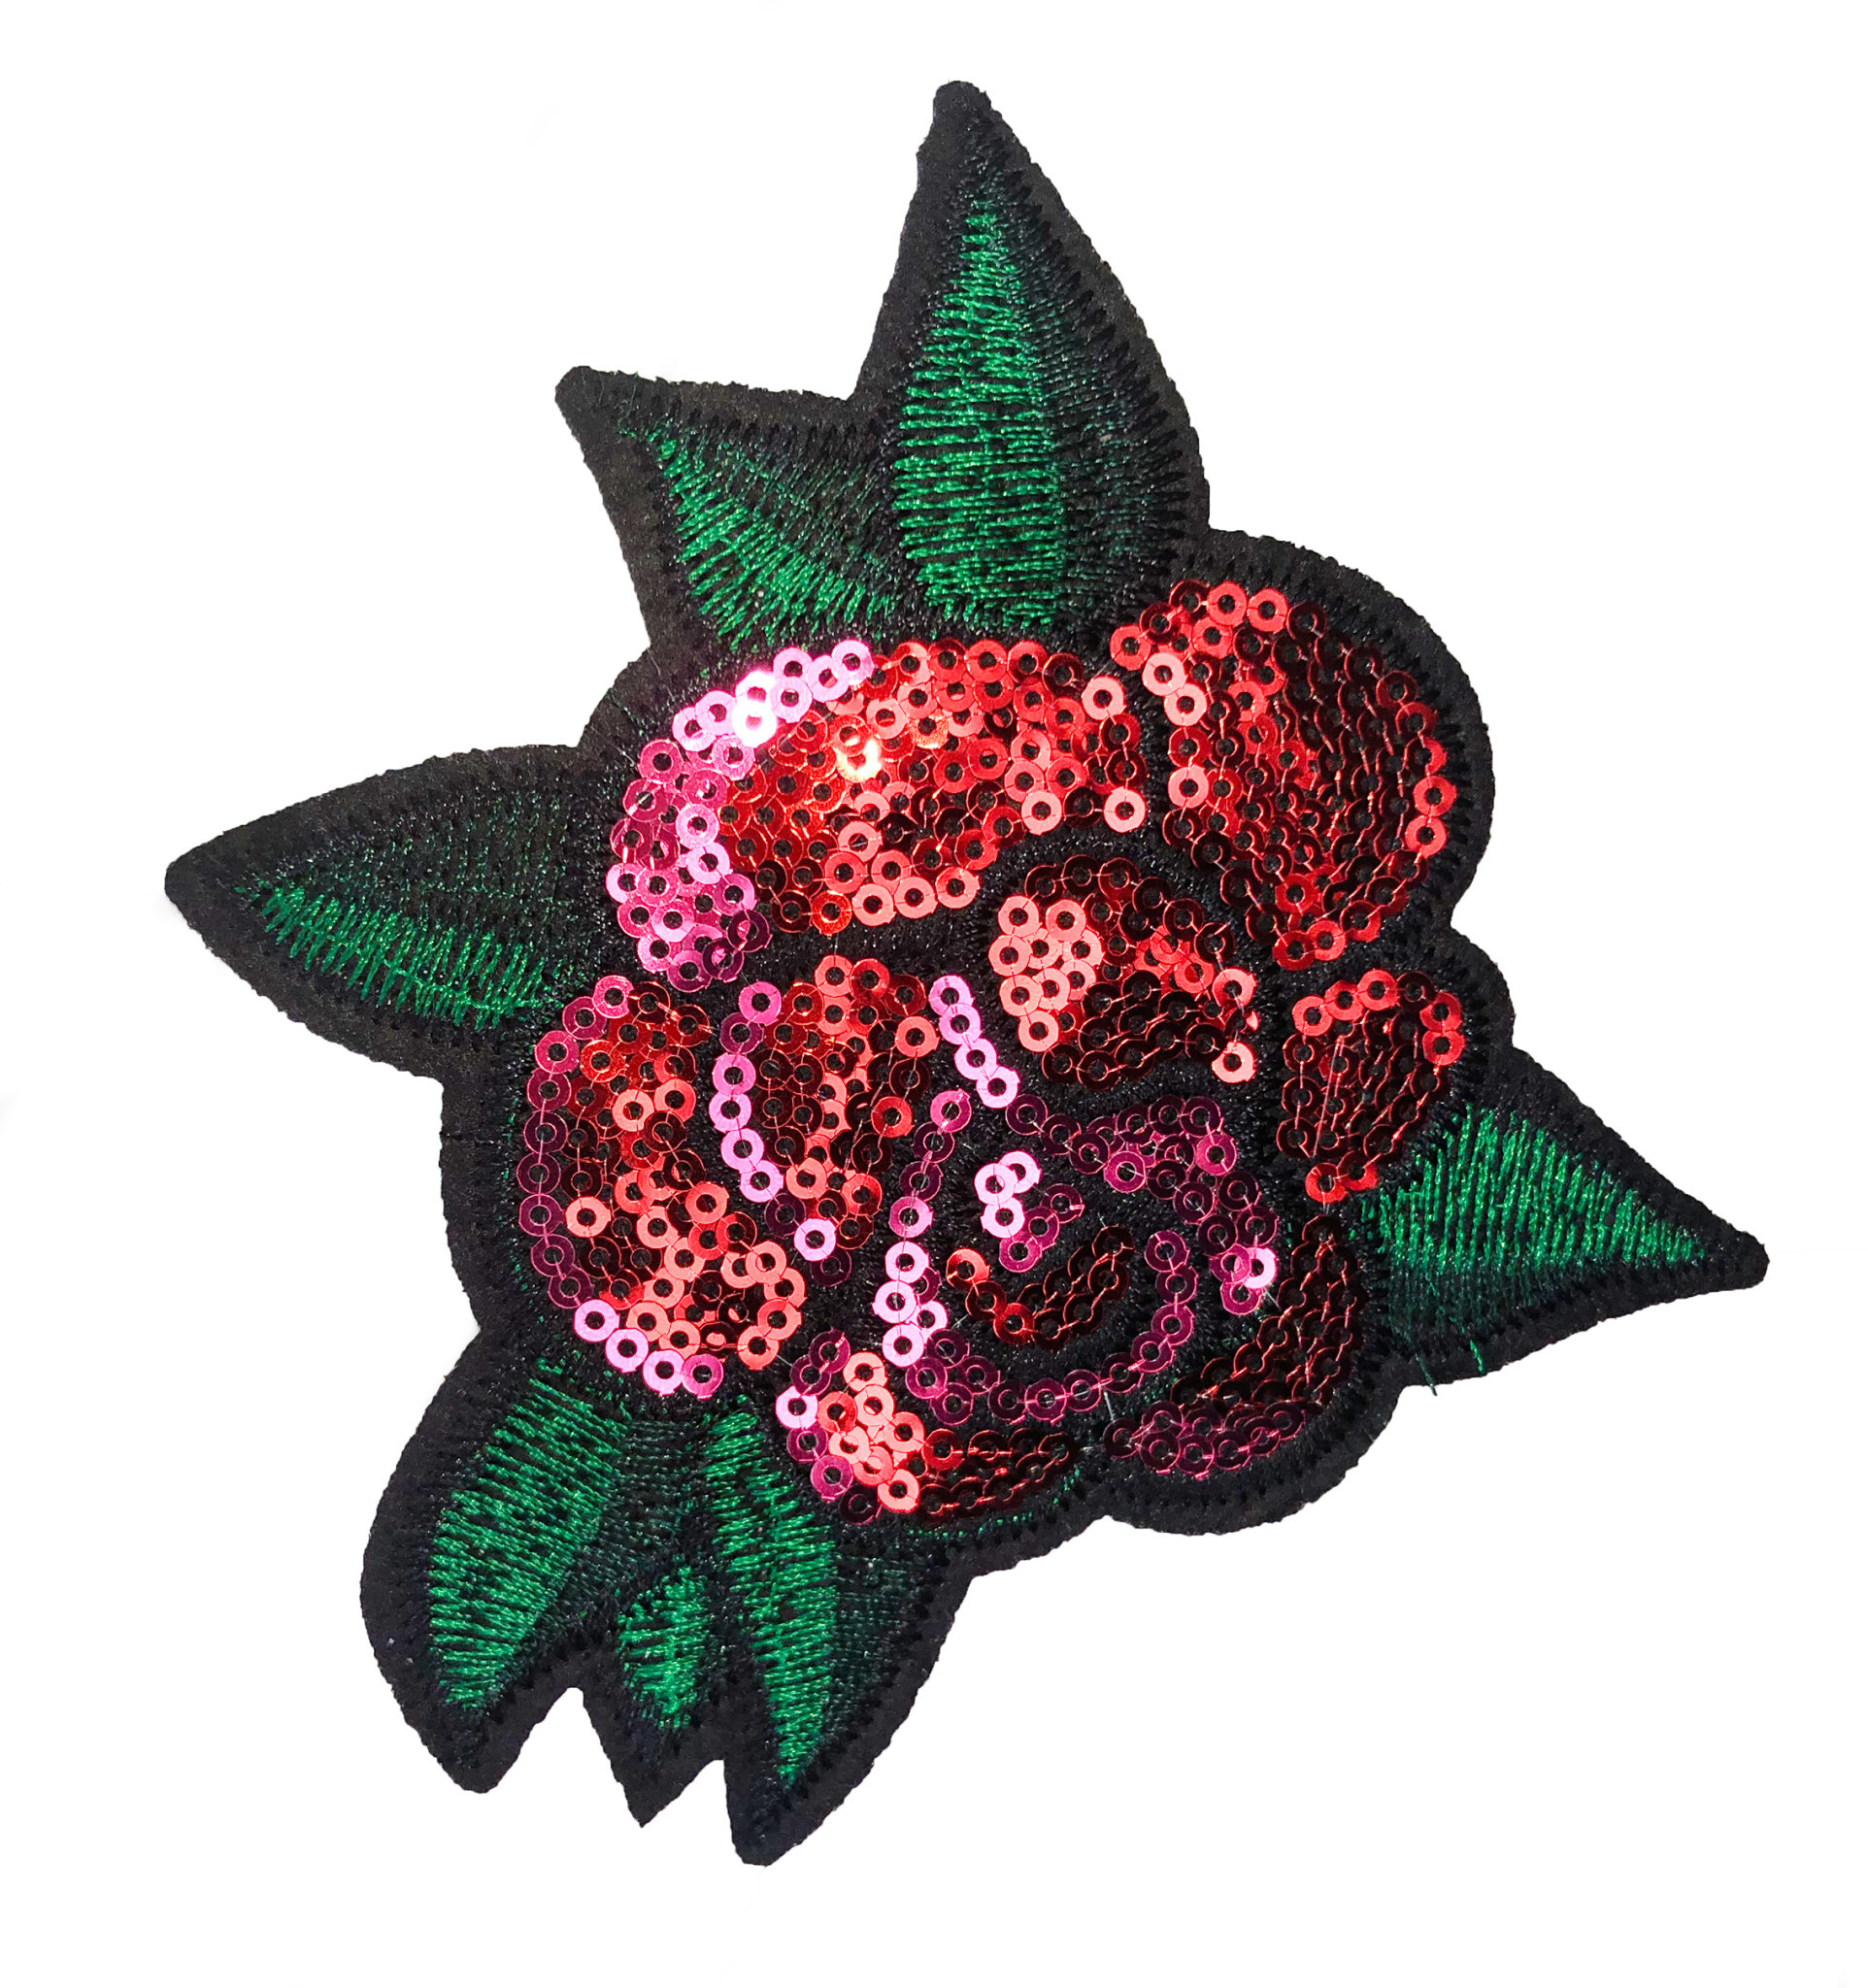 THE SHOP 10 SEQUIN LADY BOSS PATCHES-2